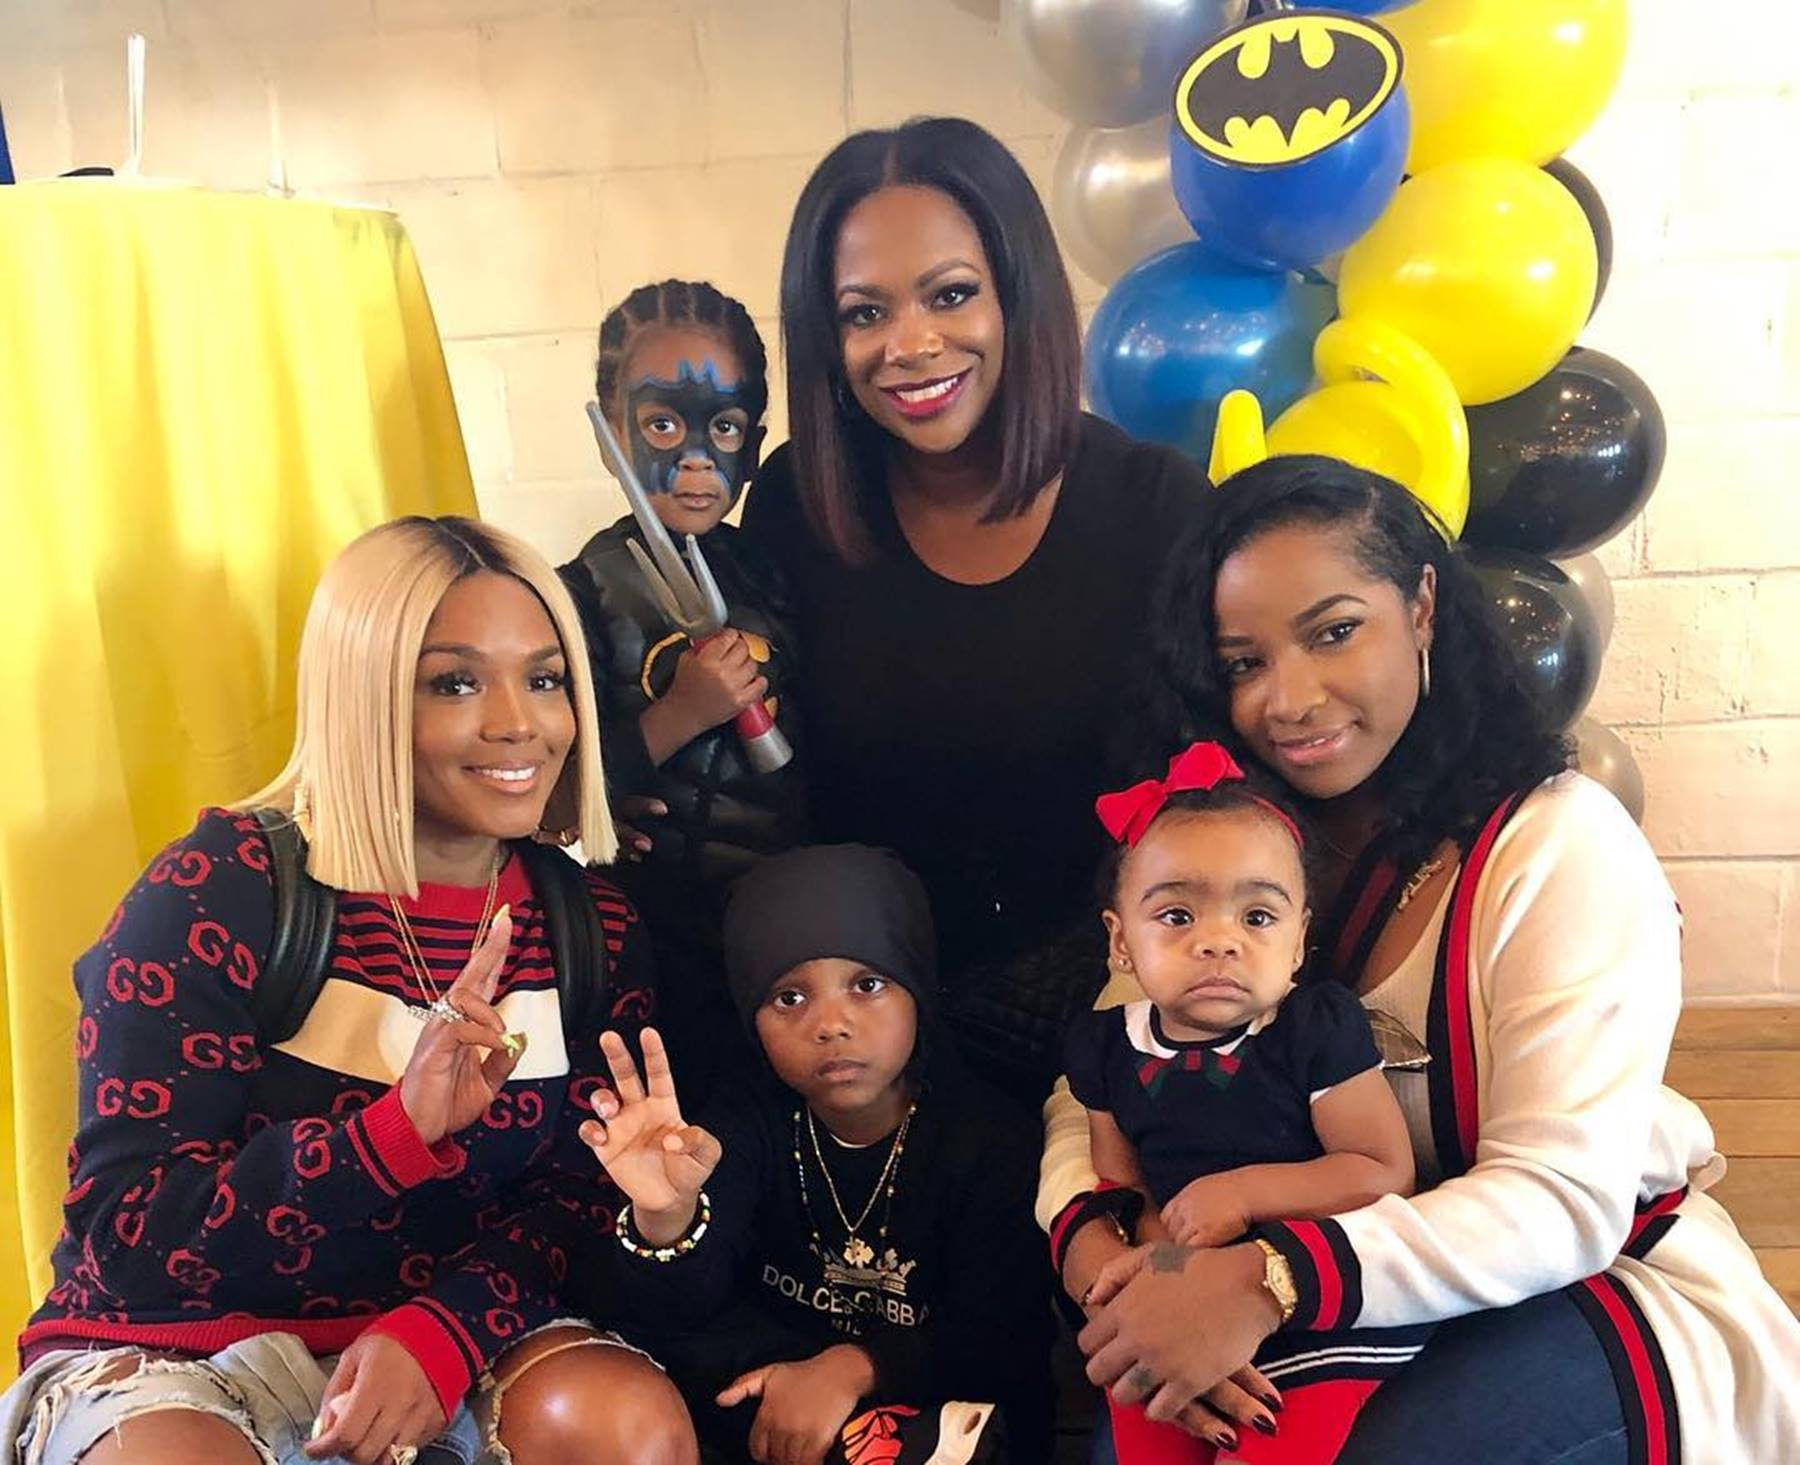 """kandi-burruss-offers-her-gratitude-to-everyone-who-came-to-celebrate-her-sons-birthday-and-shares-more-sweet-photos-from-the-party"""